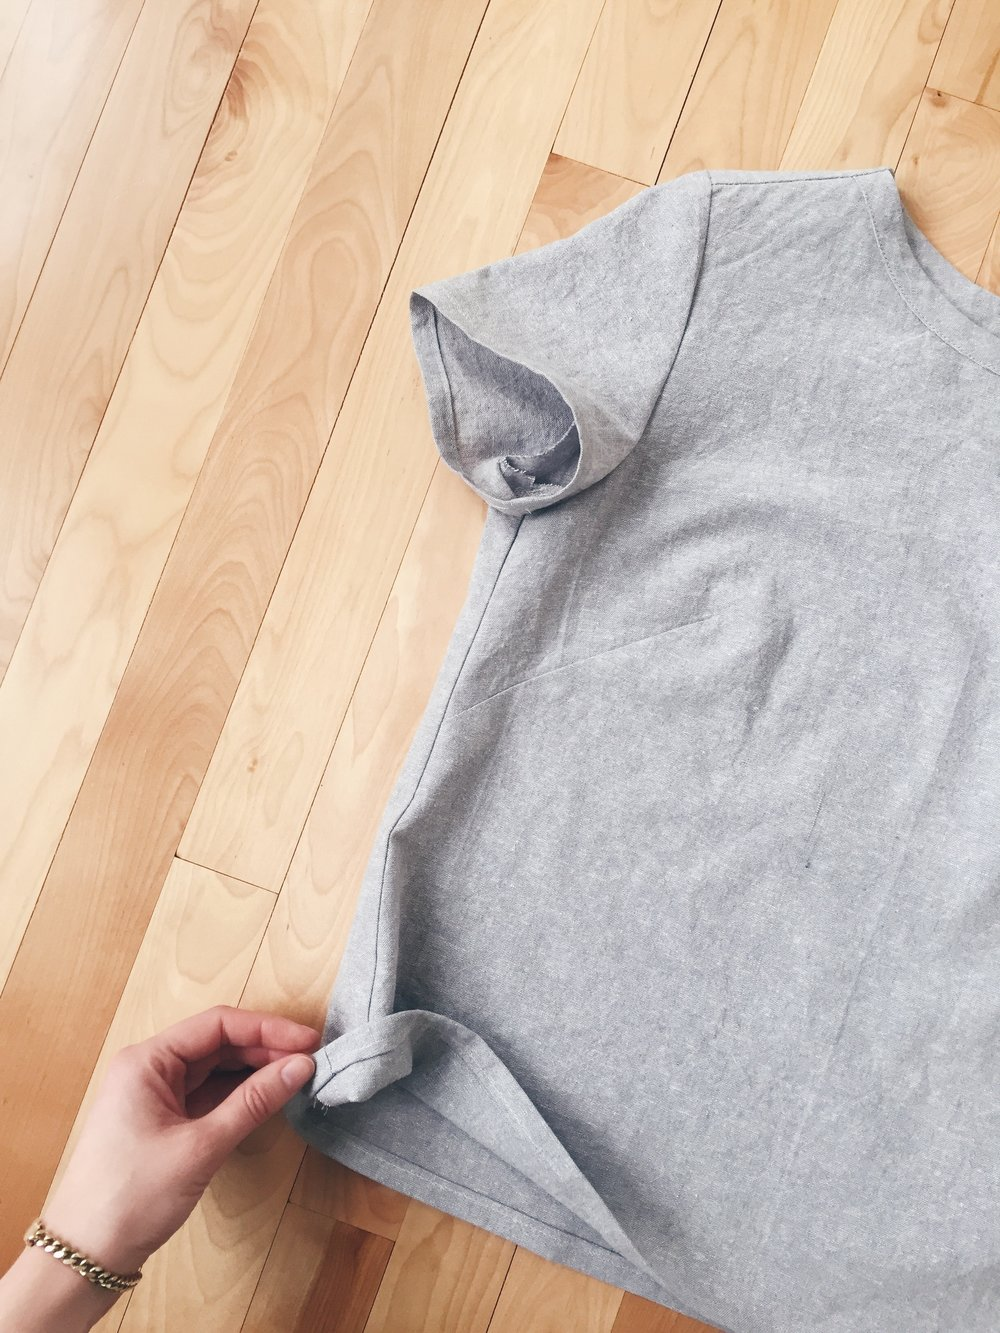 Finished Camber Shirt from Merchant and Mills